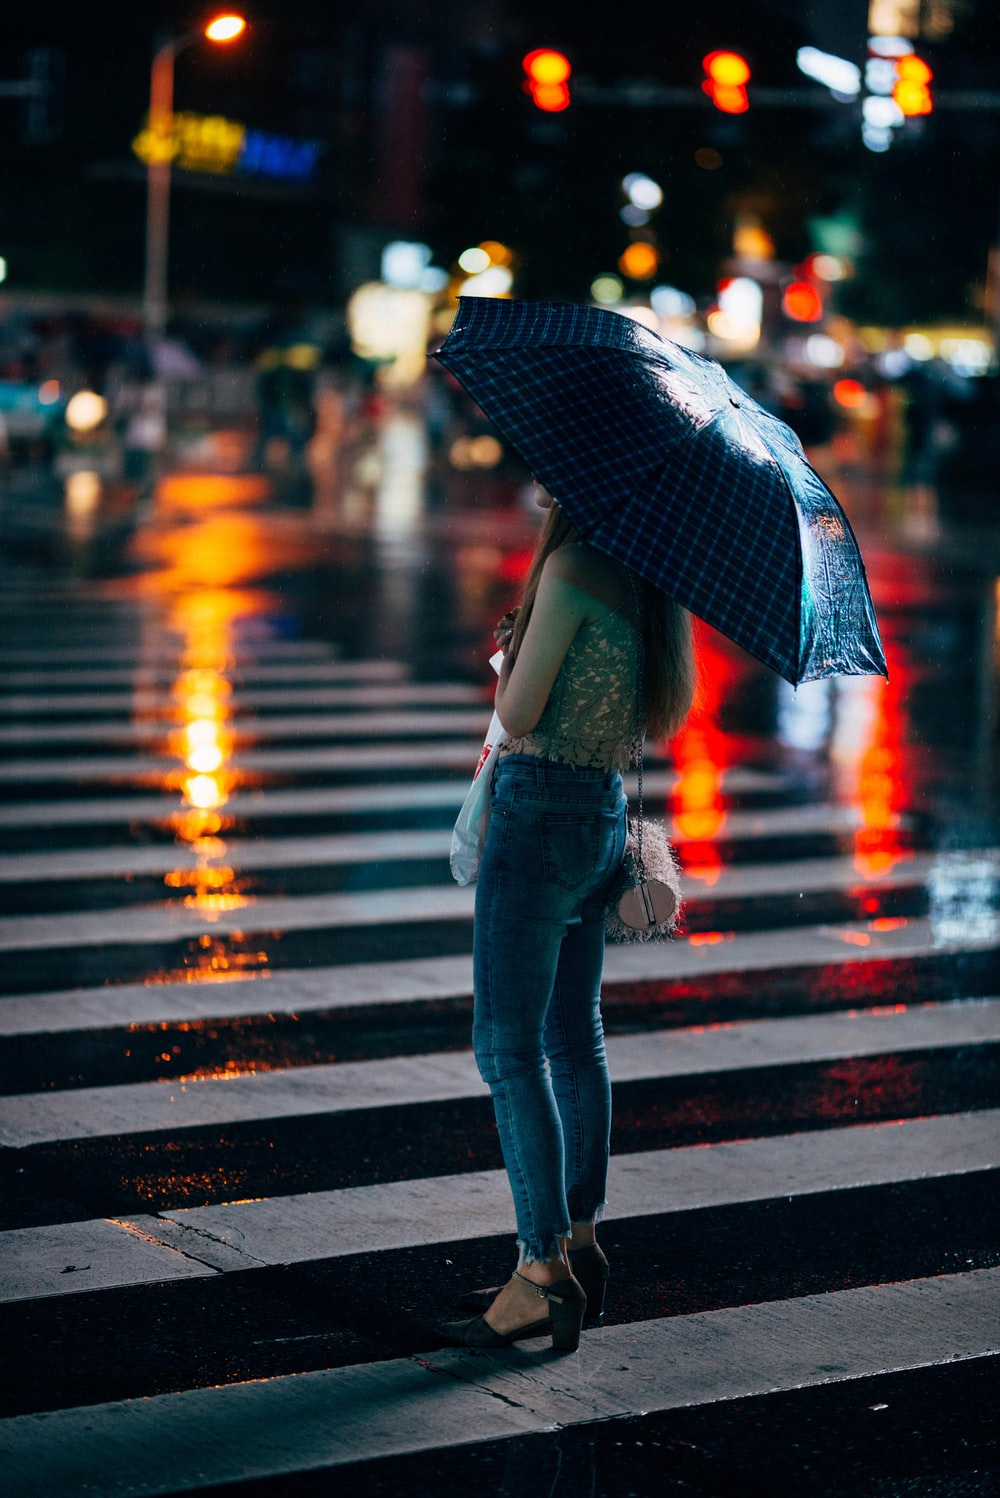 woman in blue jeans standing at the pedestrian lane holding umbrella